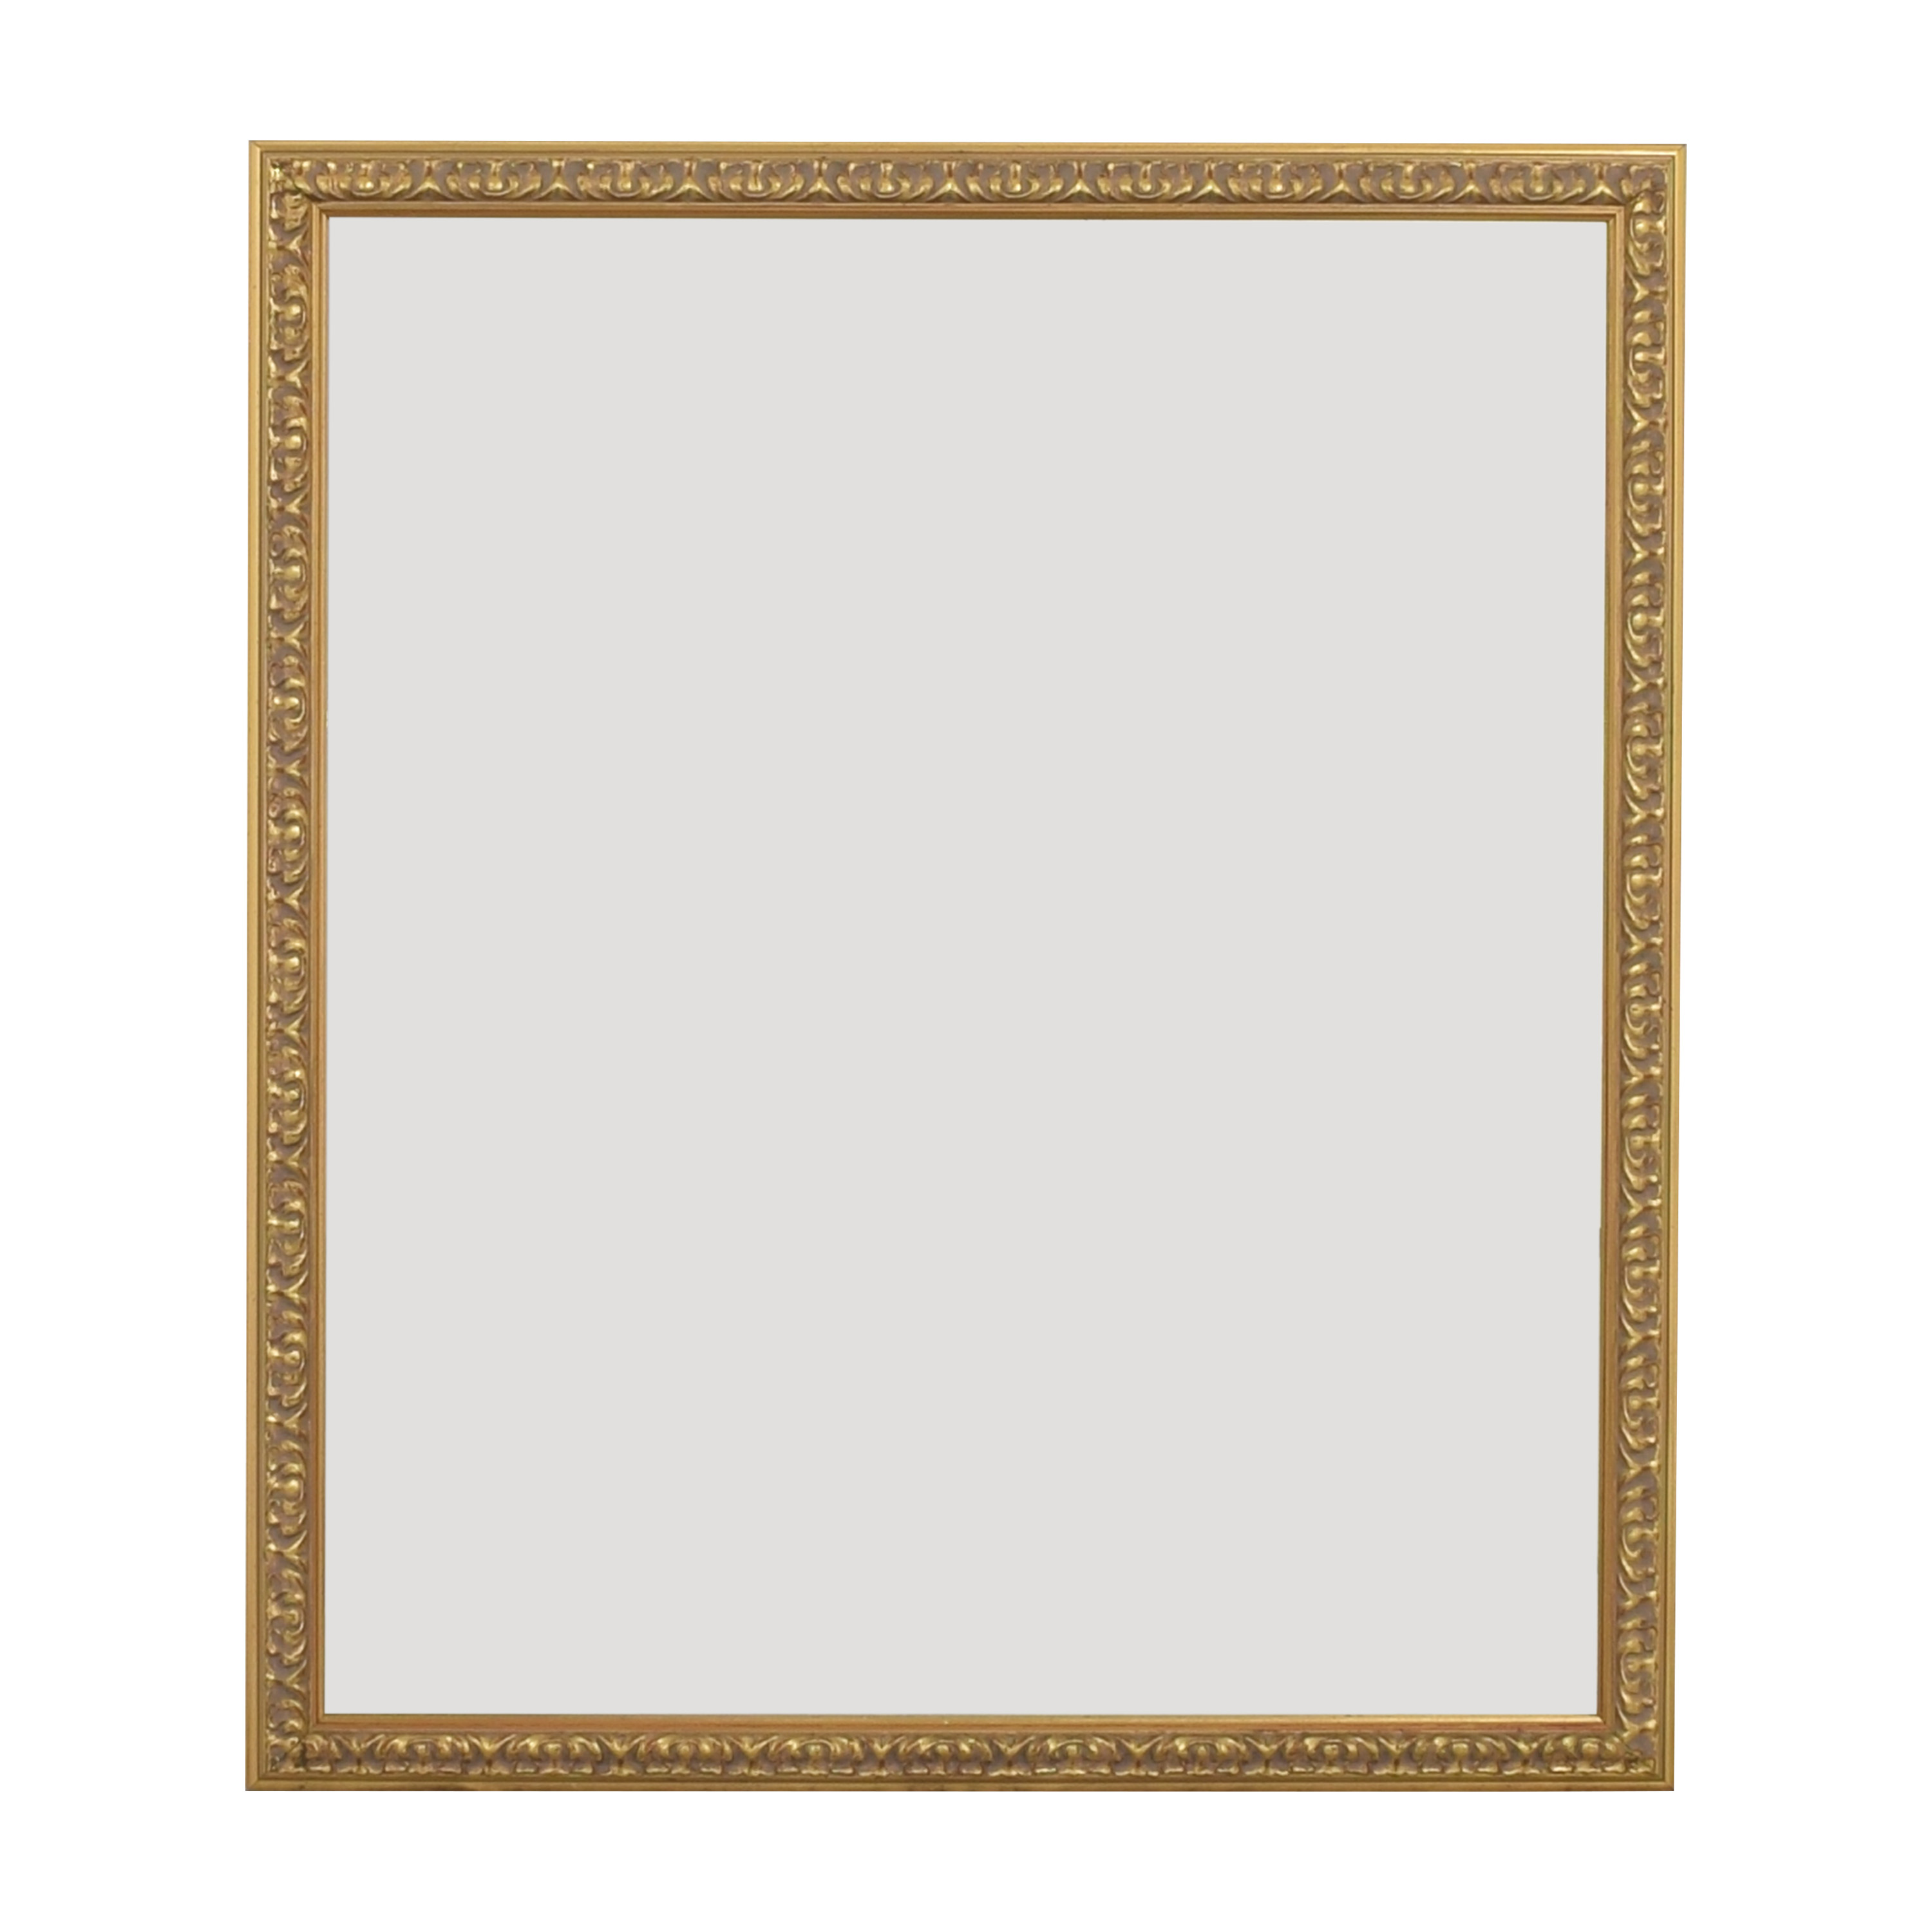 Wall Mirror with Decorative Frame coupon